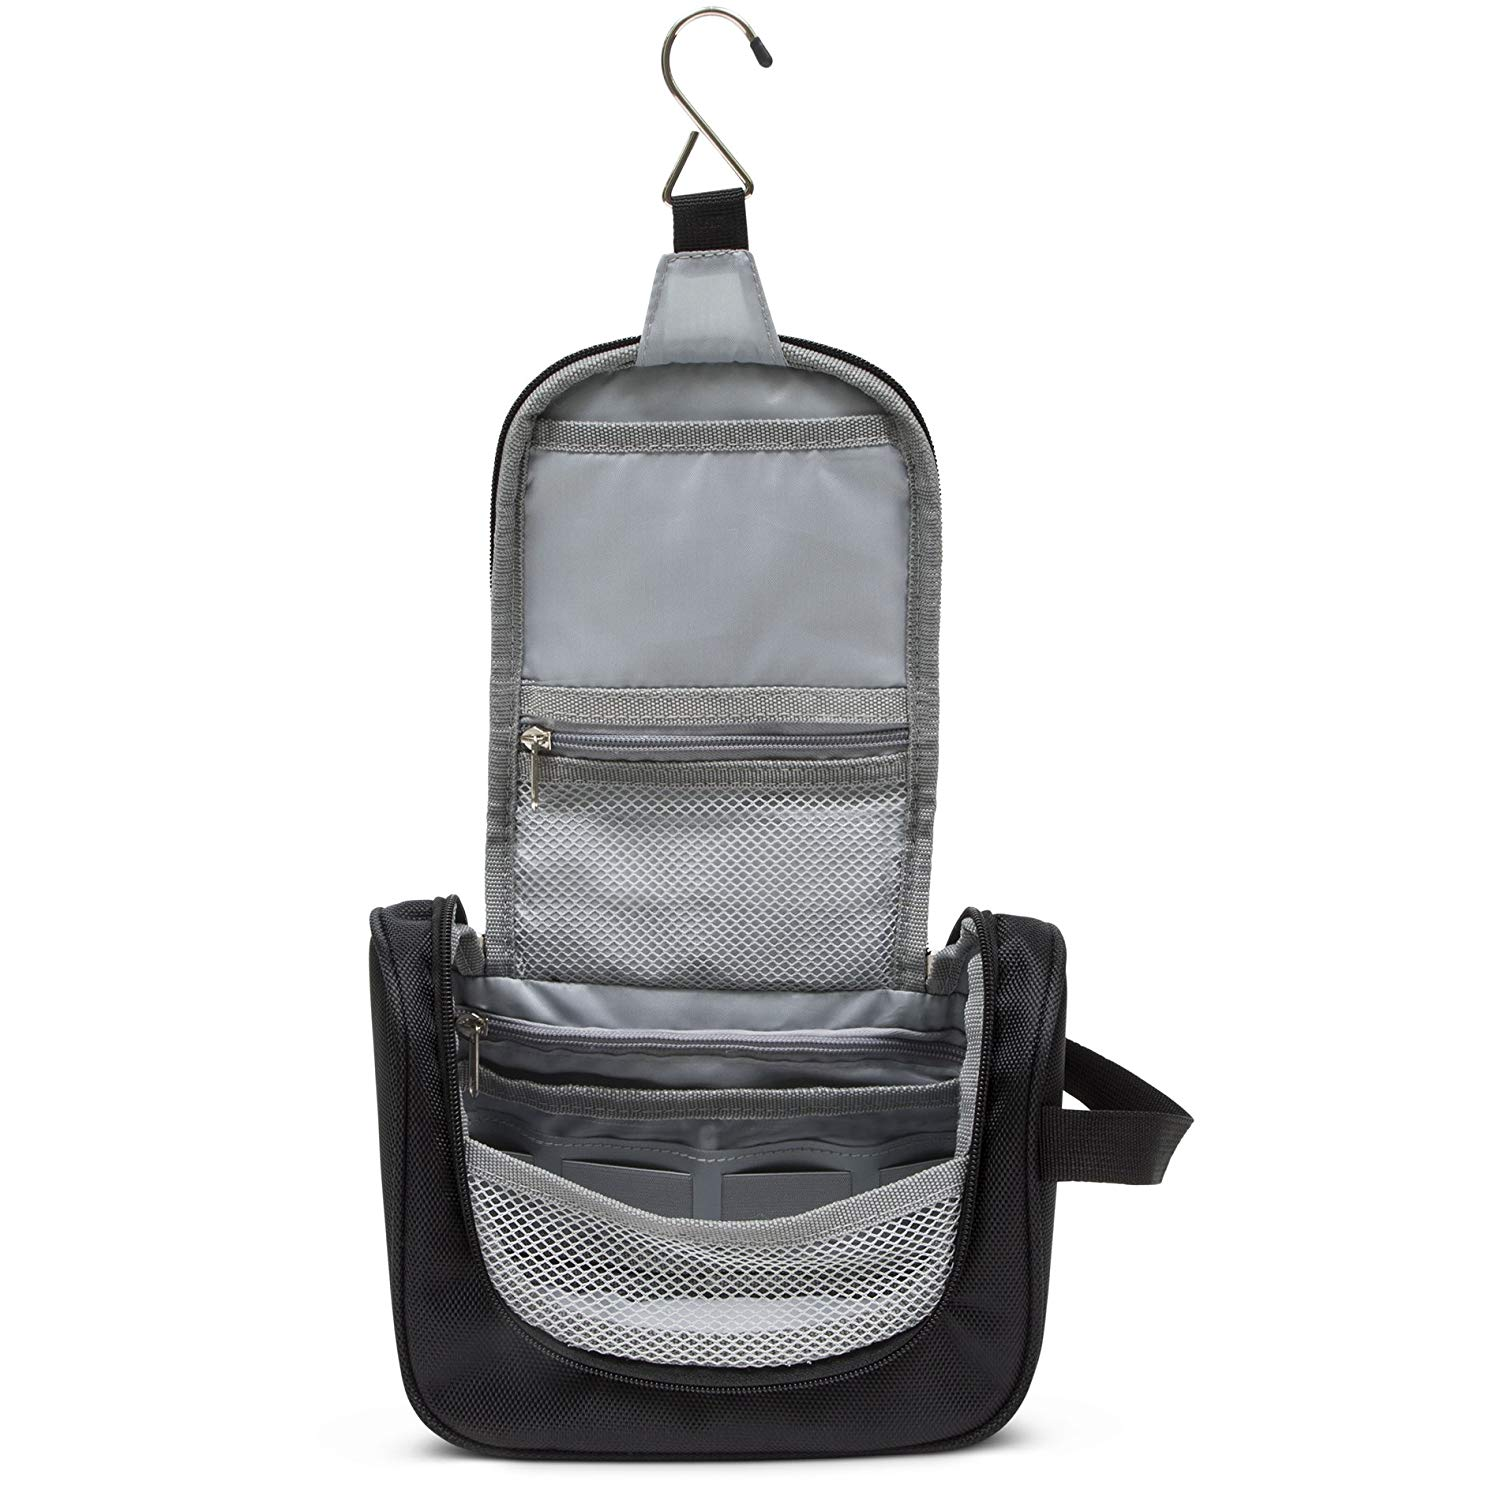 Hanging Toiletry Bag - Travel Hanging Toiletry Bag and Toiletries Organizer for Compact Bathroom Storage Dopp Bag, Shaving and Grooming Kit